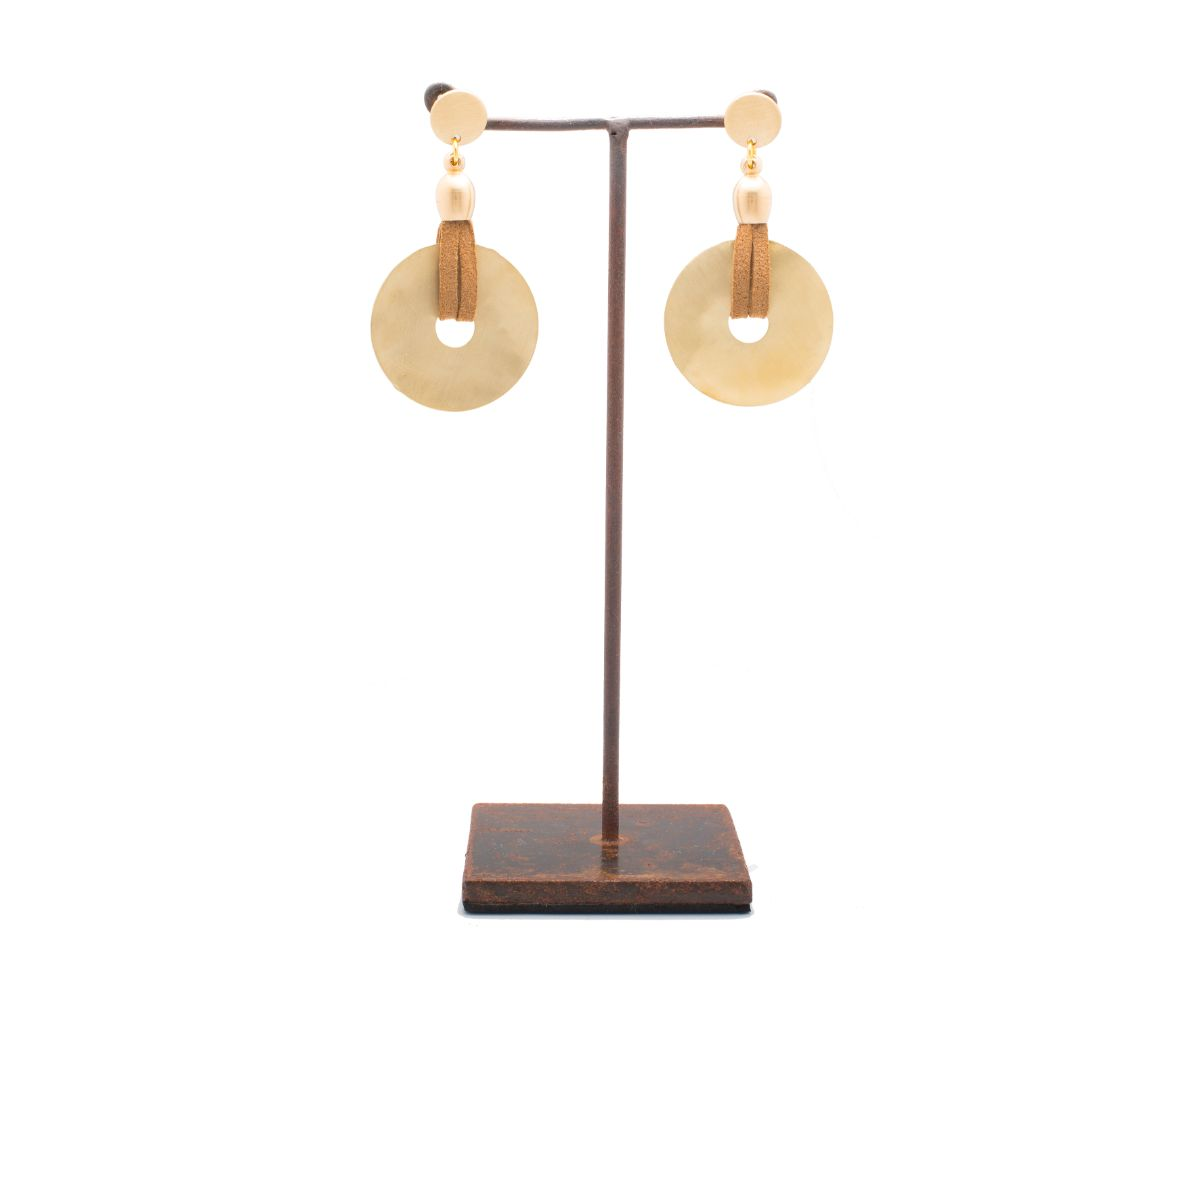 Ocaso earring with snap closure with gold saucer piece and brown suede